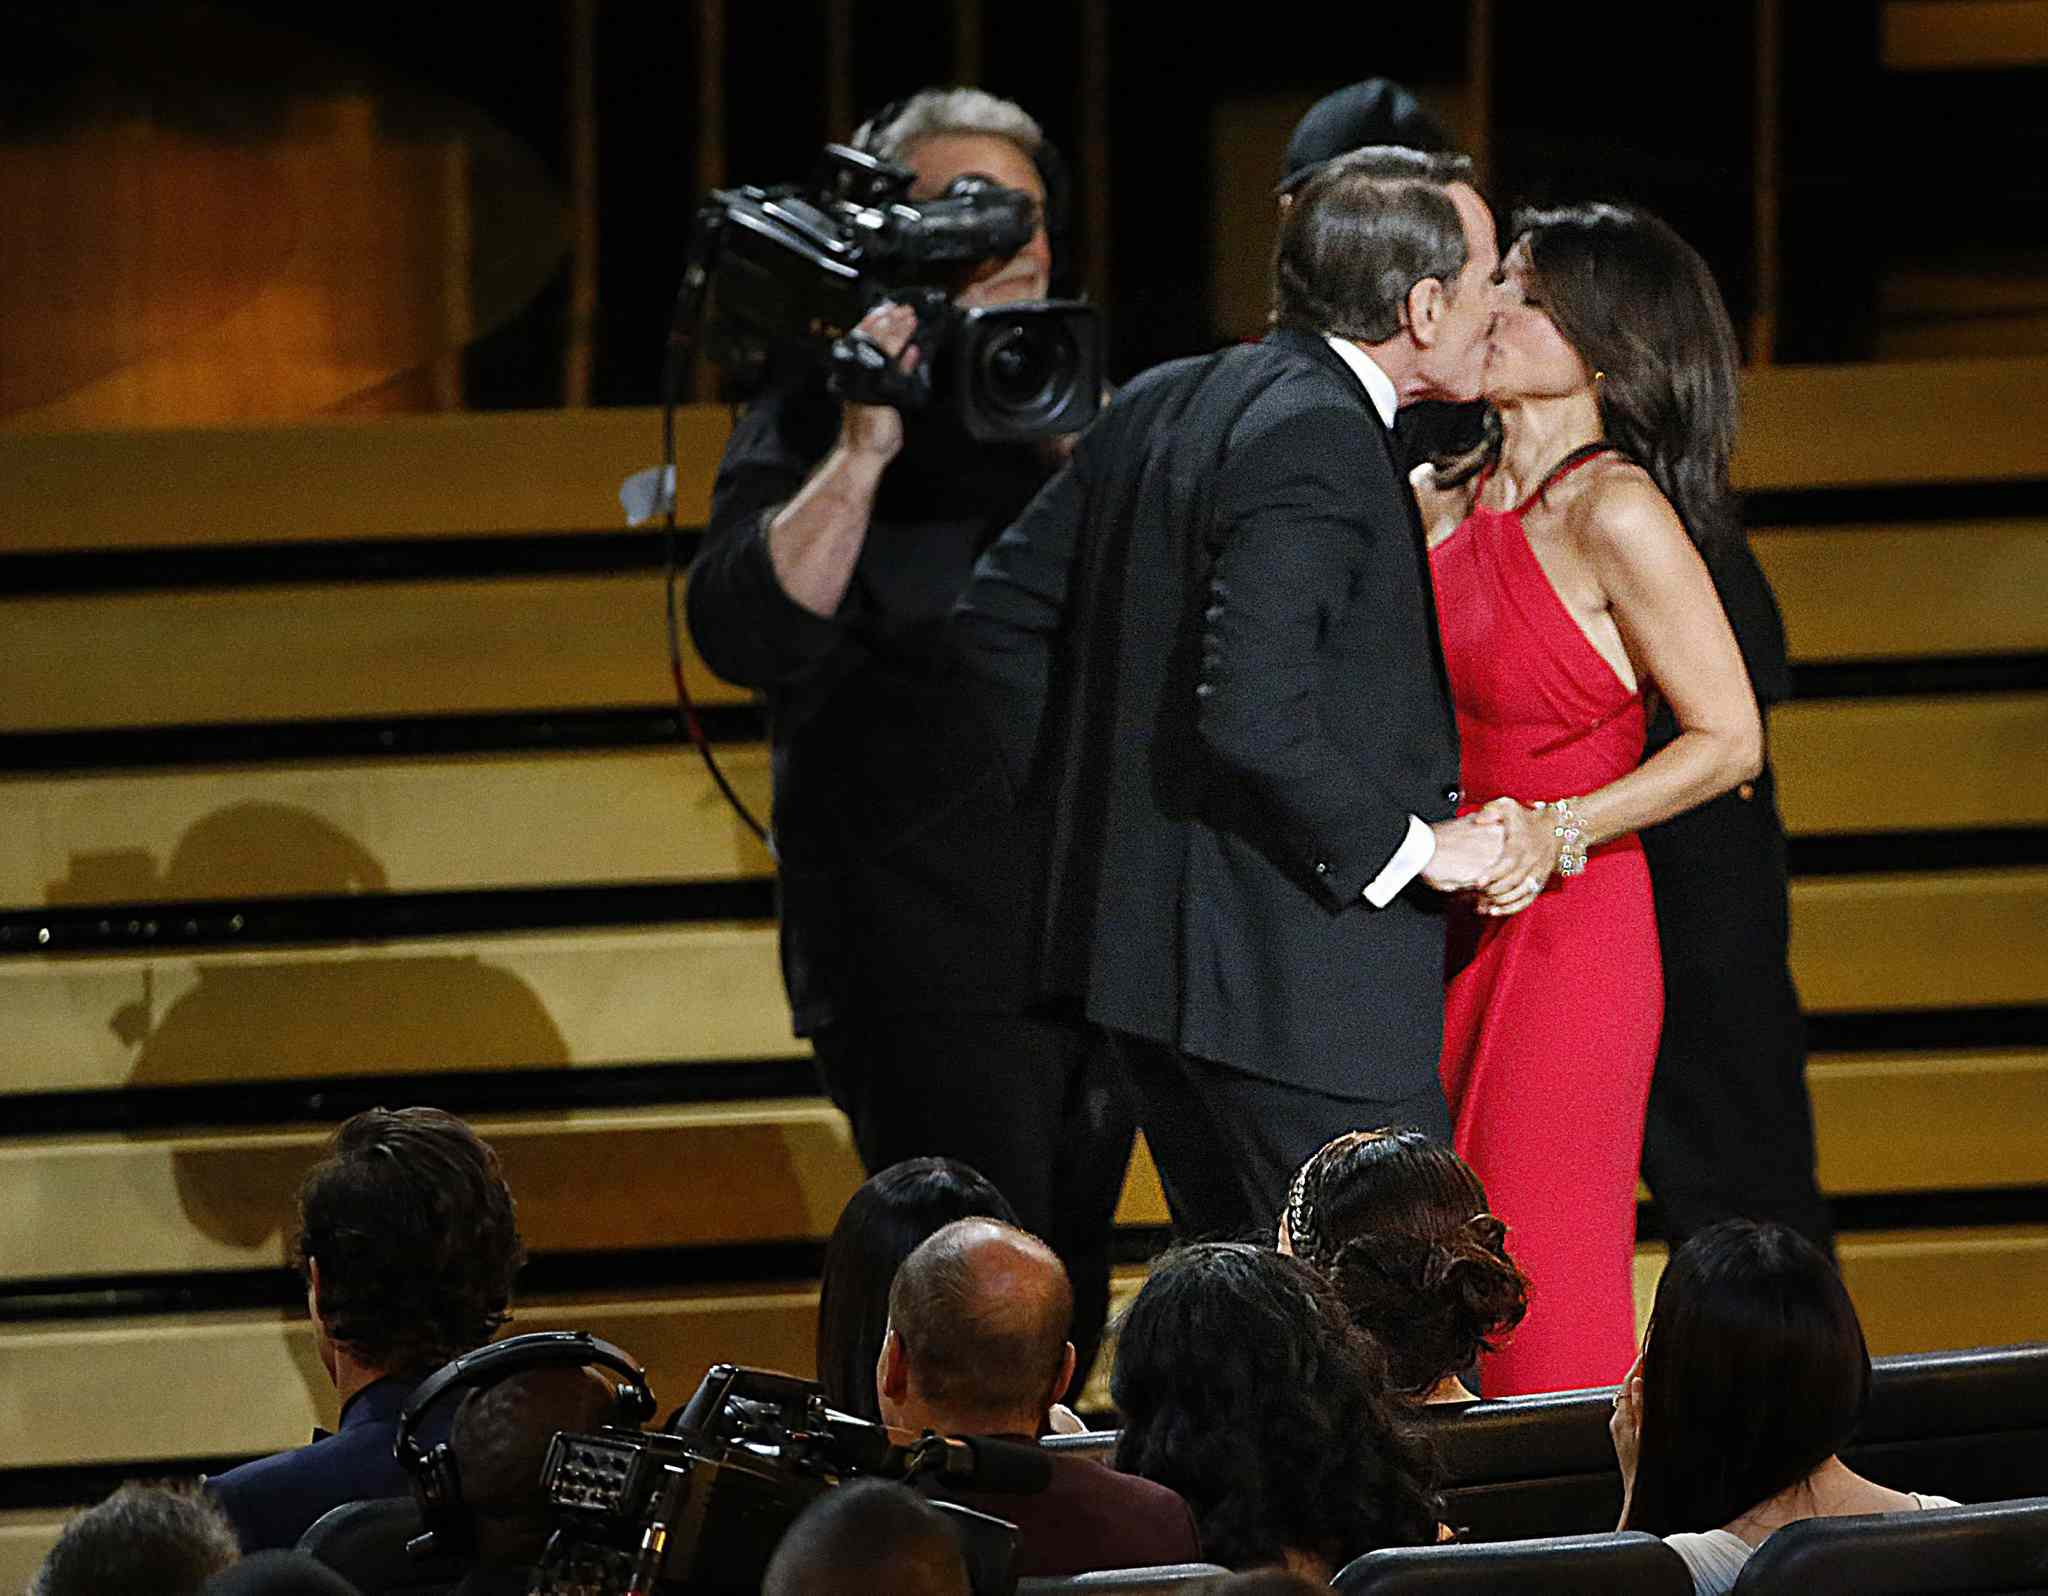 Julia Louis-Dreyfus, right, is kissed by Bryan Cranston during the 66th Annual Primetime Emmy Awards at Nokia Theatre at L.A. Live in Los Angeles Monday.